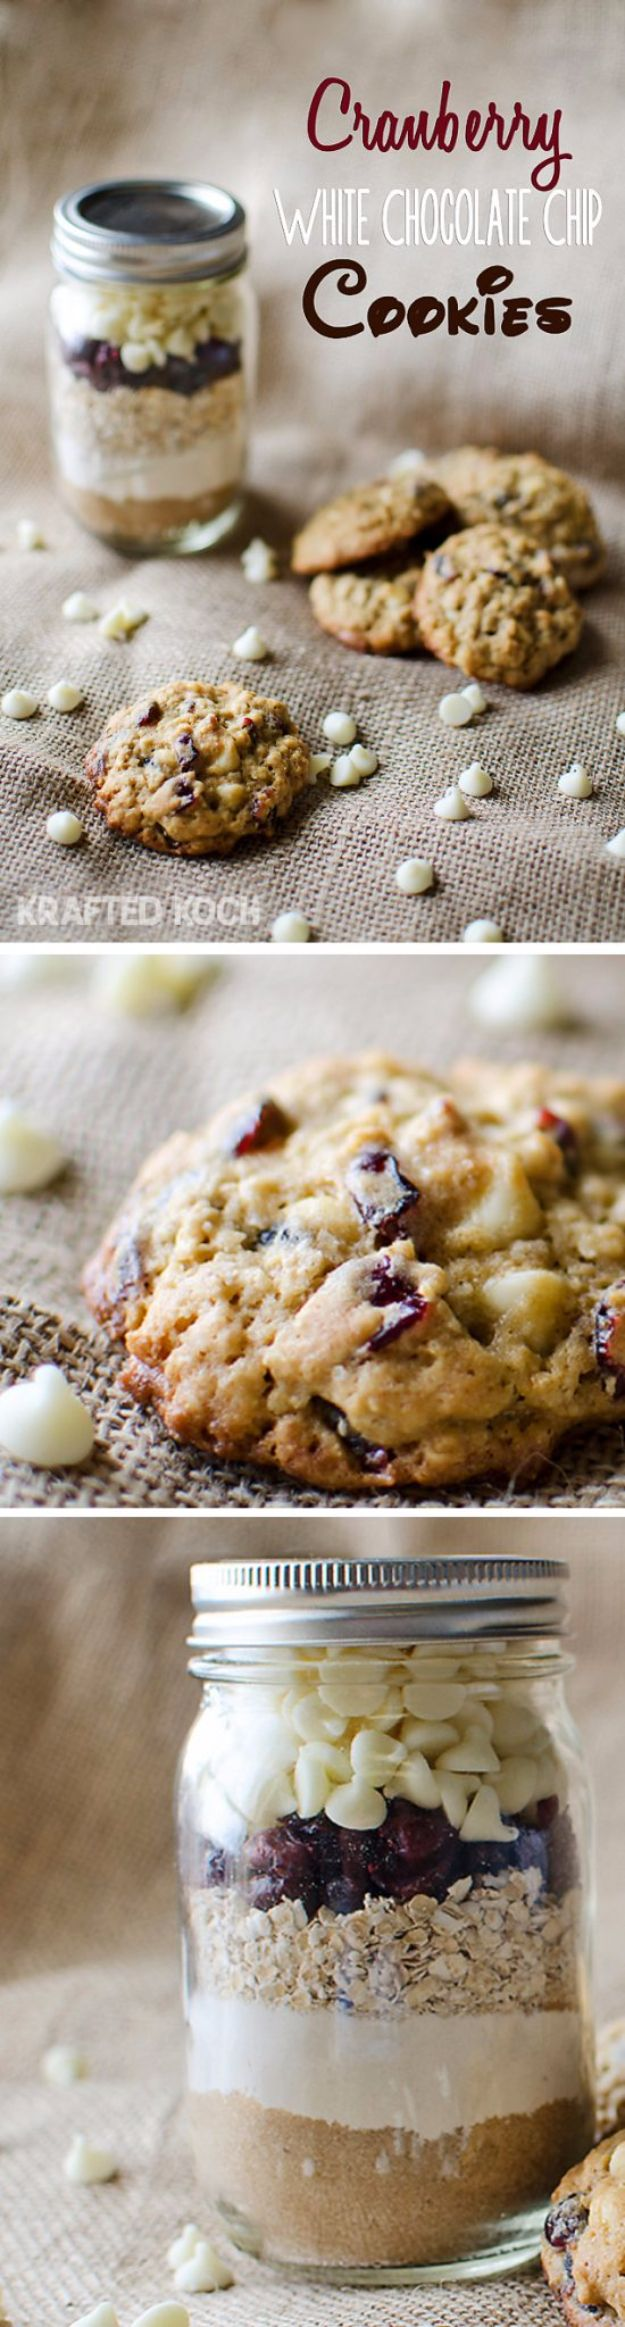 Best Mason Jar Cookies - Cranberry White Chocolate Chip Cookies in a Pint Jar - Mason Jar Cookie Recipe Mix for Cute Decorated DIY Gifts - Easy Chocolate Chip Recipes, Christmas Presents and Wedding Favors in Mason Jars - Fun Ideas for DIY Parties and Cheap LAst Mintue Gift Ideas for Friends, Family and Neighbors http://diyjoy.com/best-mason-jar-cookie-recipes